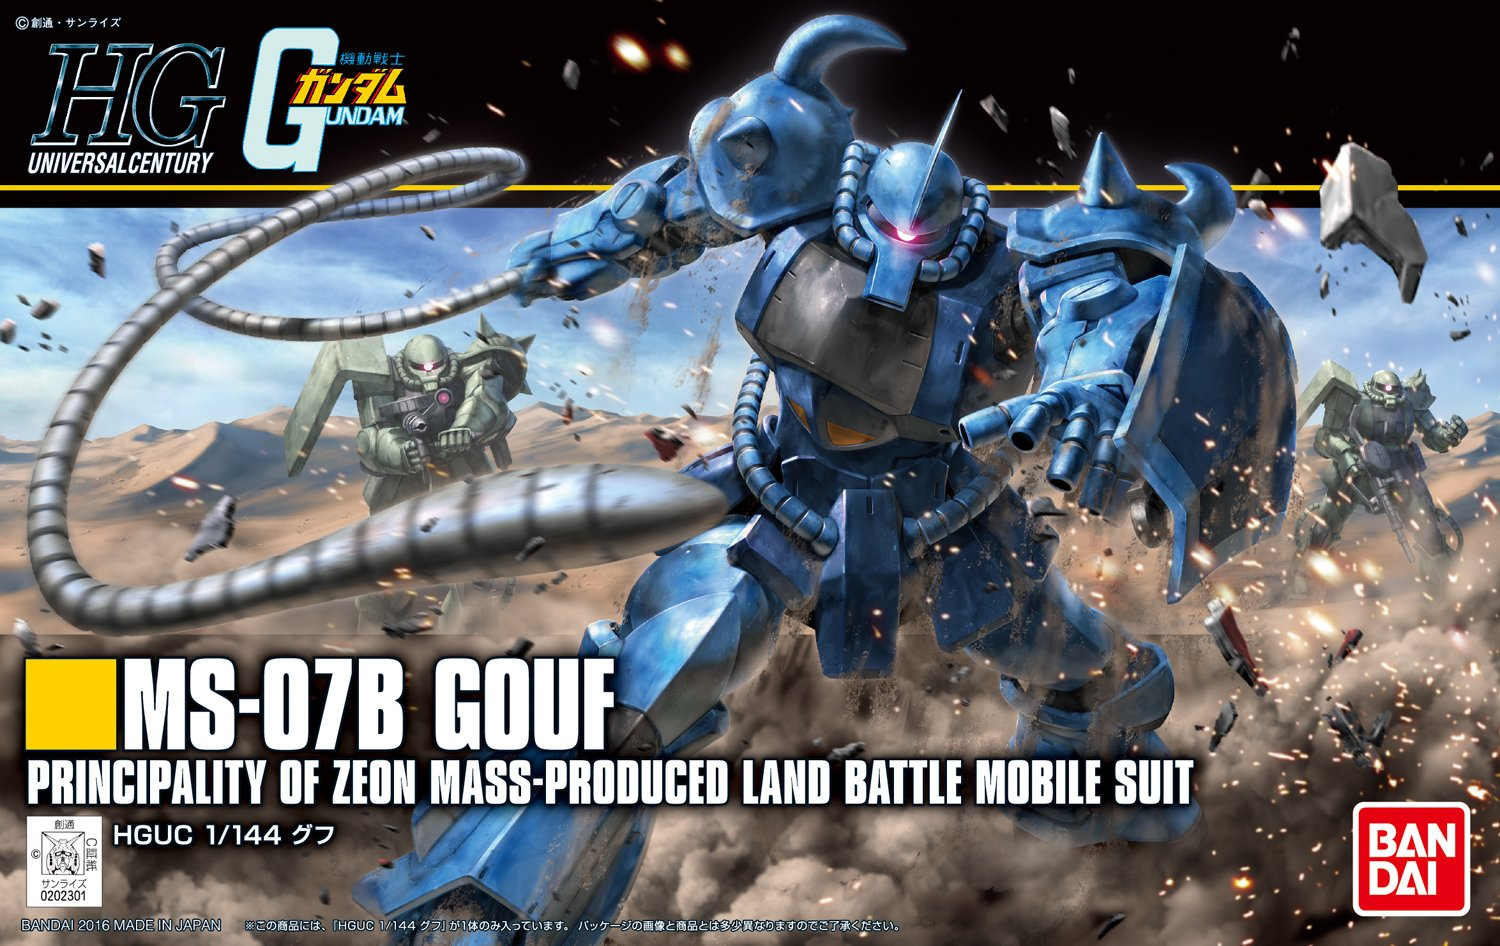 HGUC 1/144 REVIVE MS-07B グフ [Gouf]